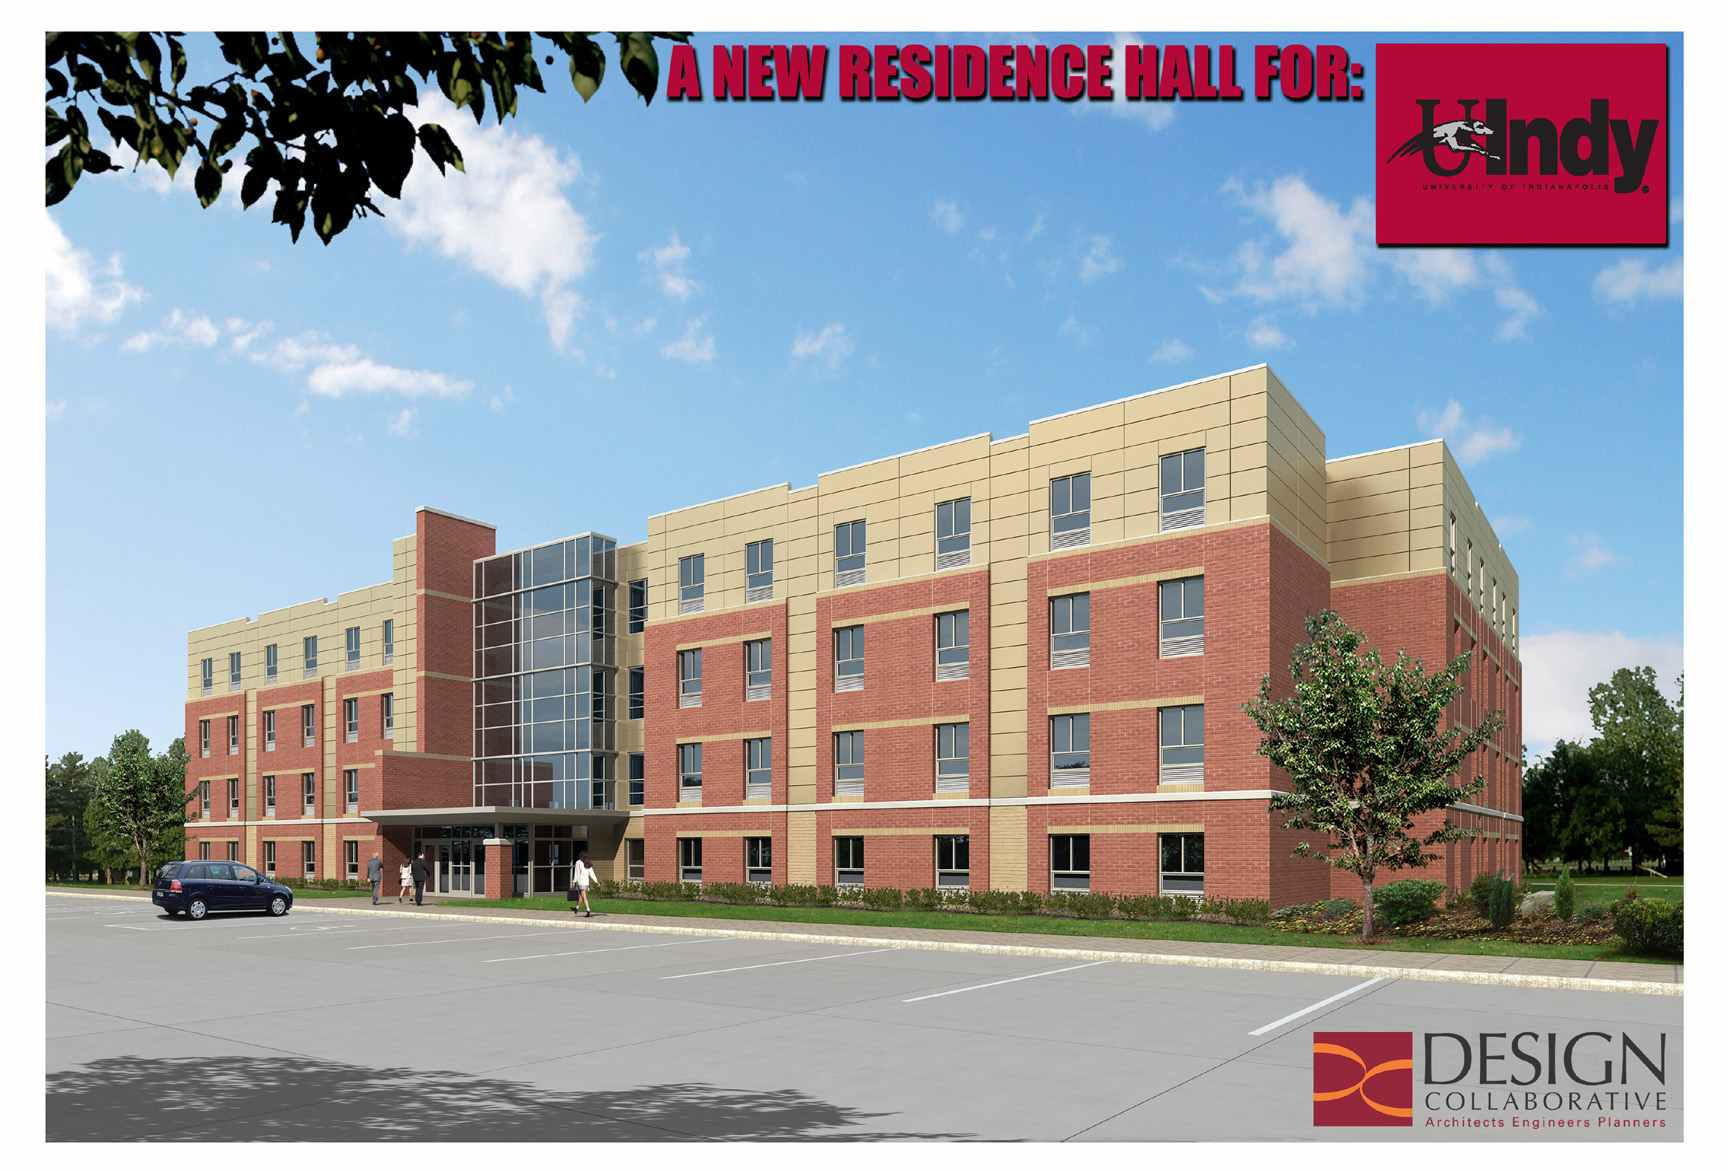 University of Indianapolis residence hall